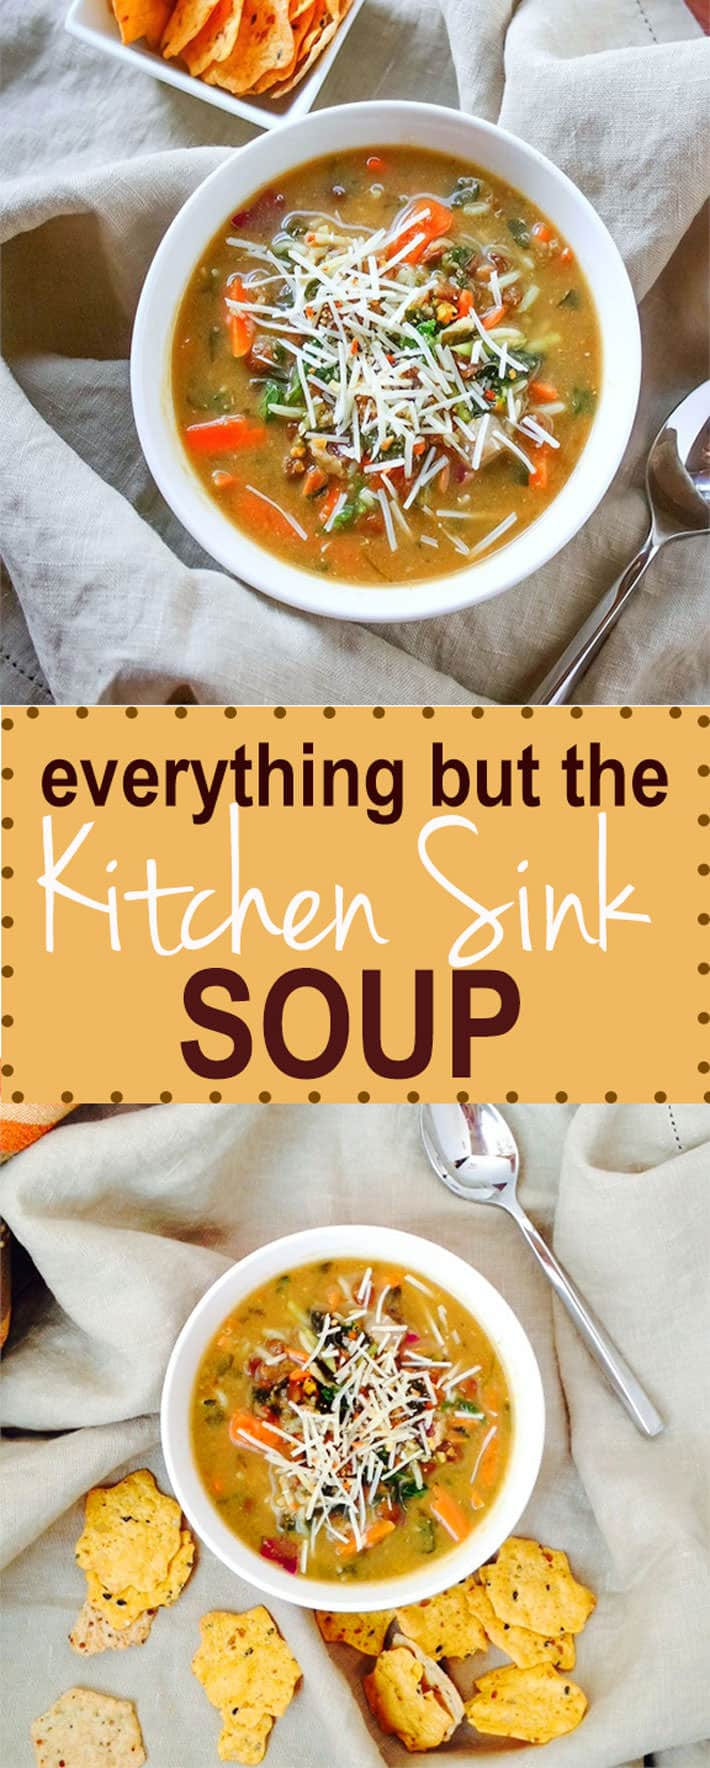 Everything But the Kitchen Sink Soup gluten free and easy to make with leftovers! So good for those last minute meals. Healthy and packed with veggies and protein!/ Gluten free and vegan friendly